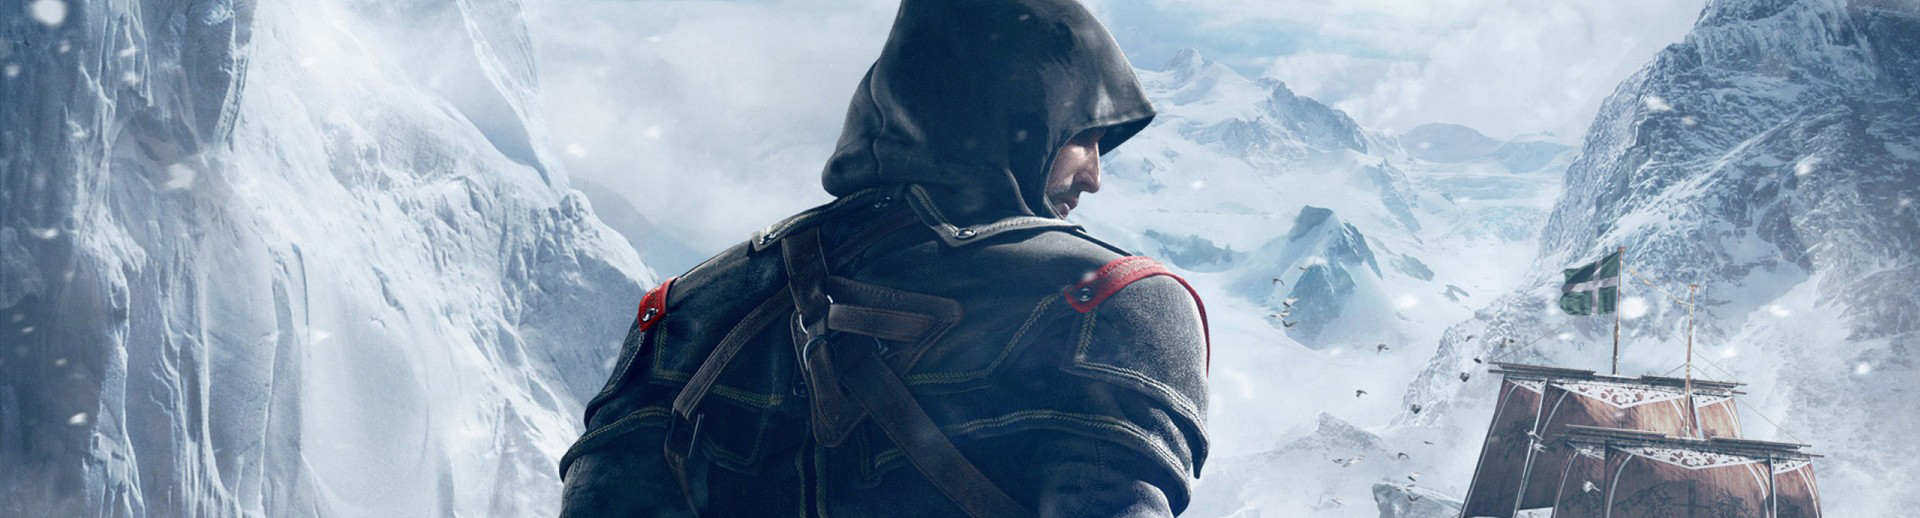 Assassin's Creed: Rogue – Remastered | US and EU Release + Additional Outfits